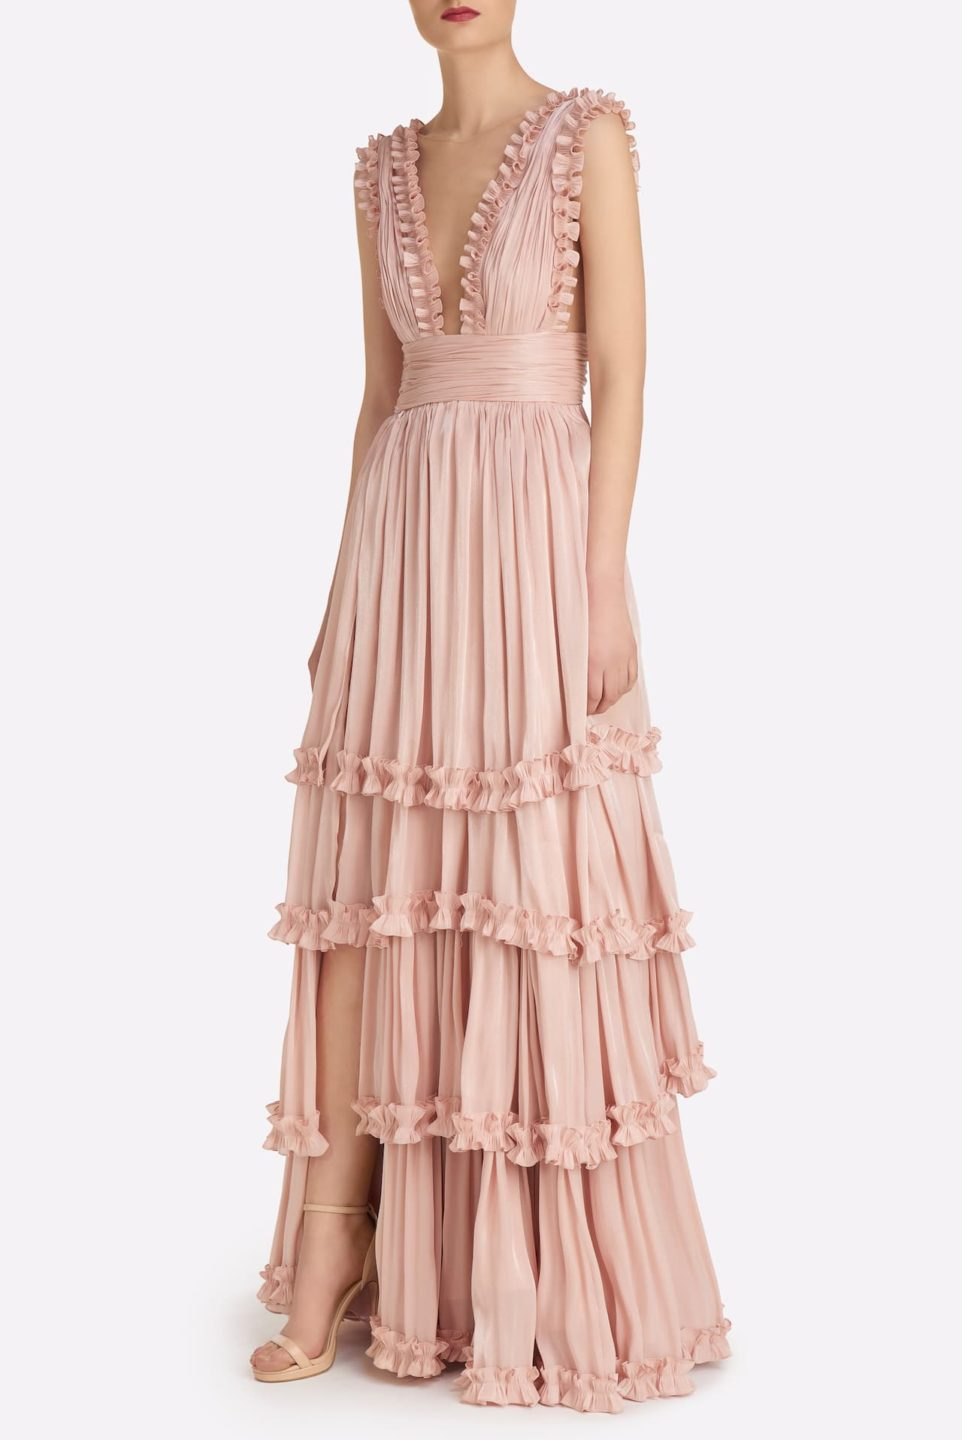 Rosina SS2147 Pink Iridescent Lurex Georgette Tiered Gown with Plunging neckline & Ruffle Detail